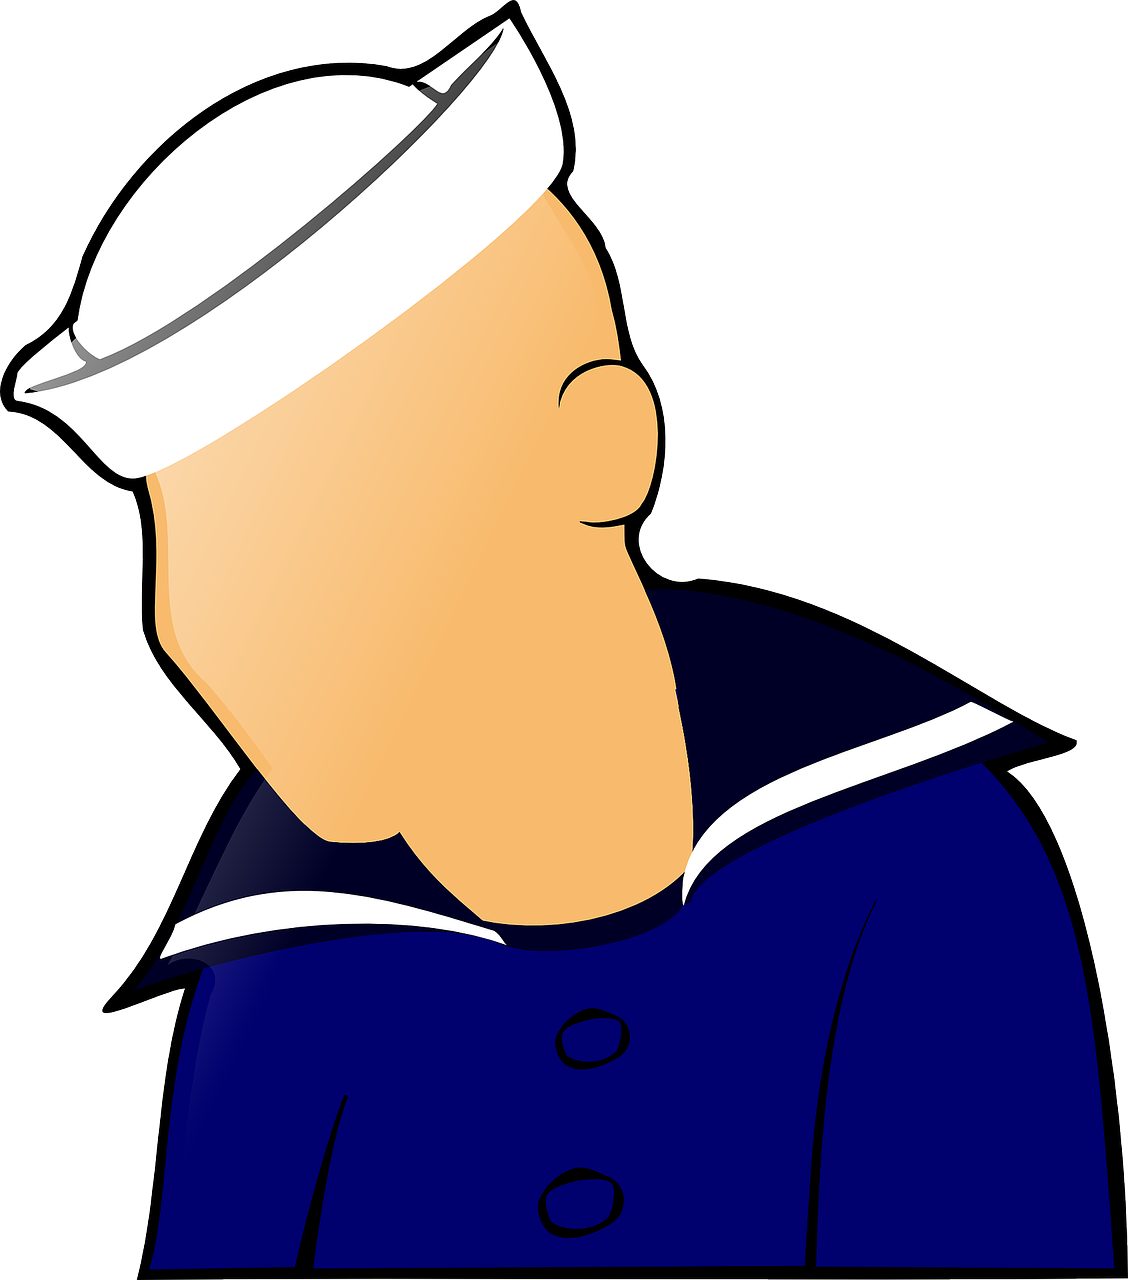 Boat, Sailor, Man, Figure, People, Hat #boat, #sailor, #man.